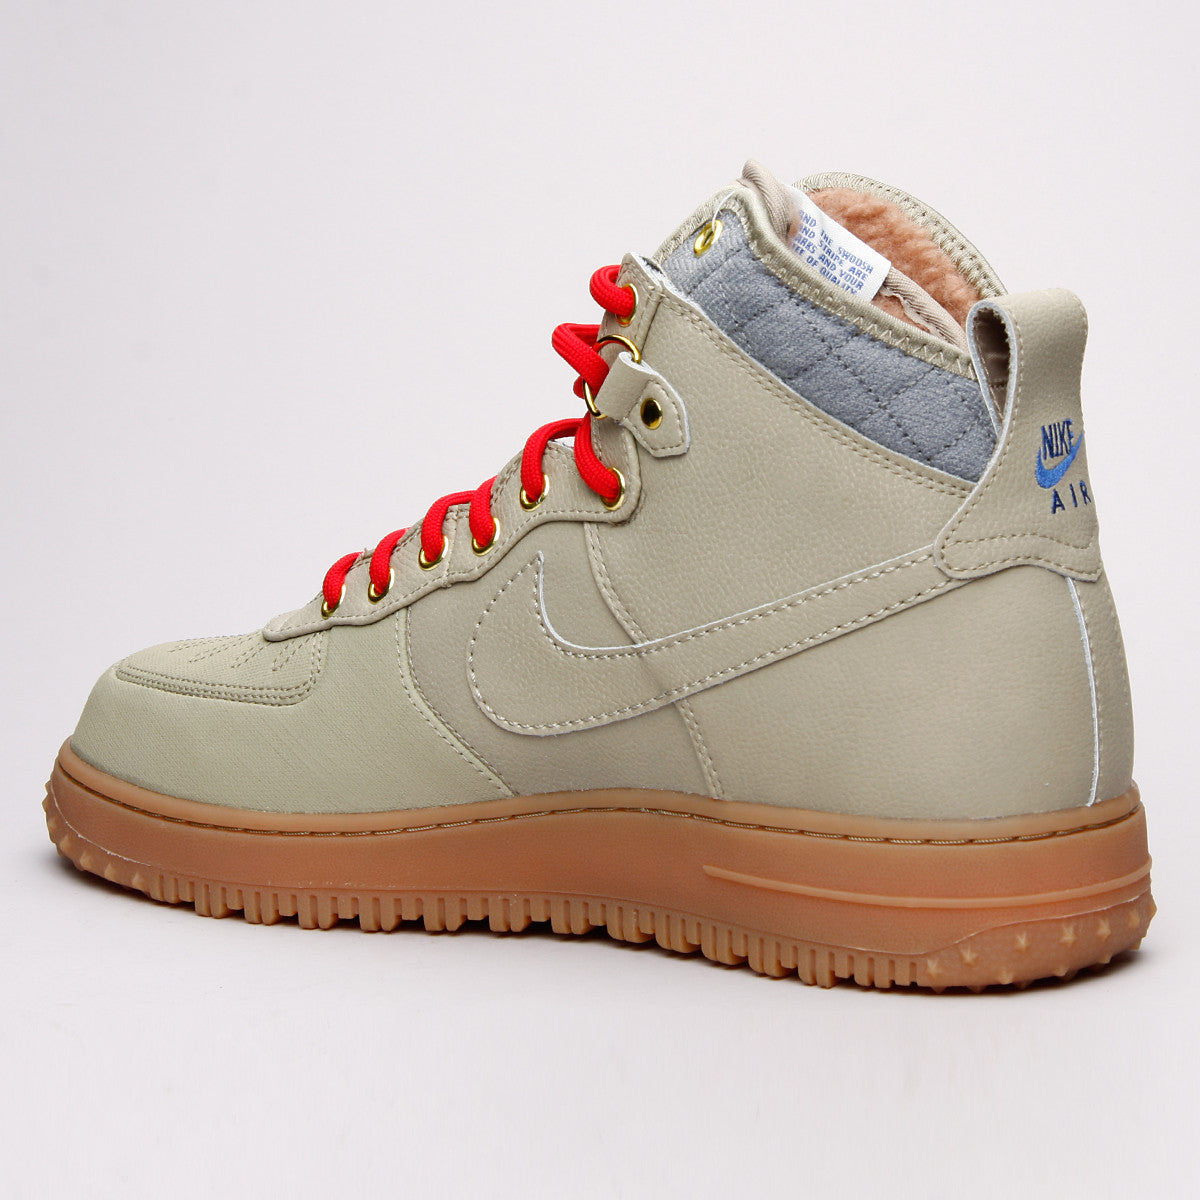 Parker Dusseau Style Review Nike Duck Boot Air Force One San Francisco